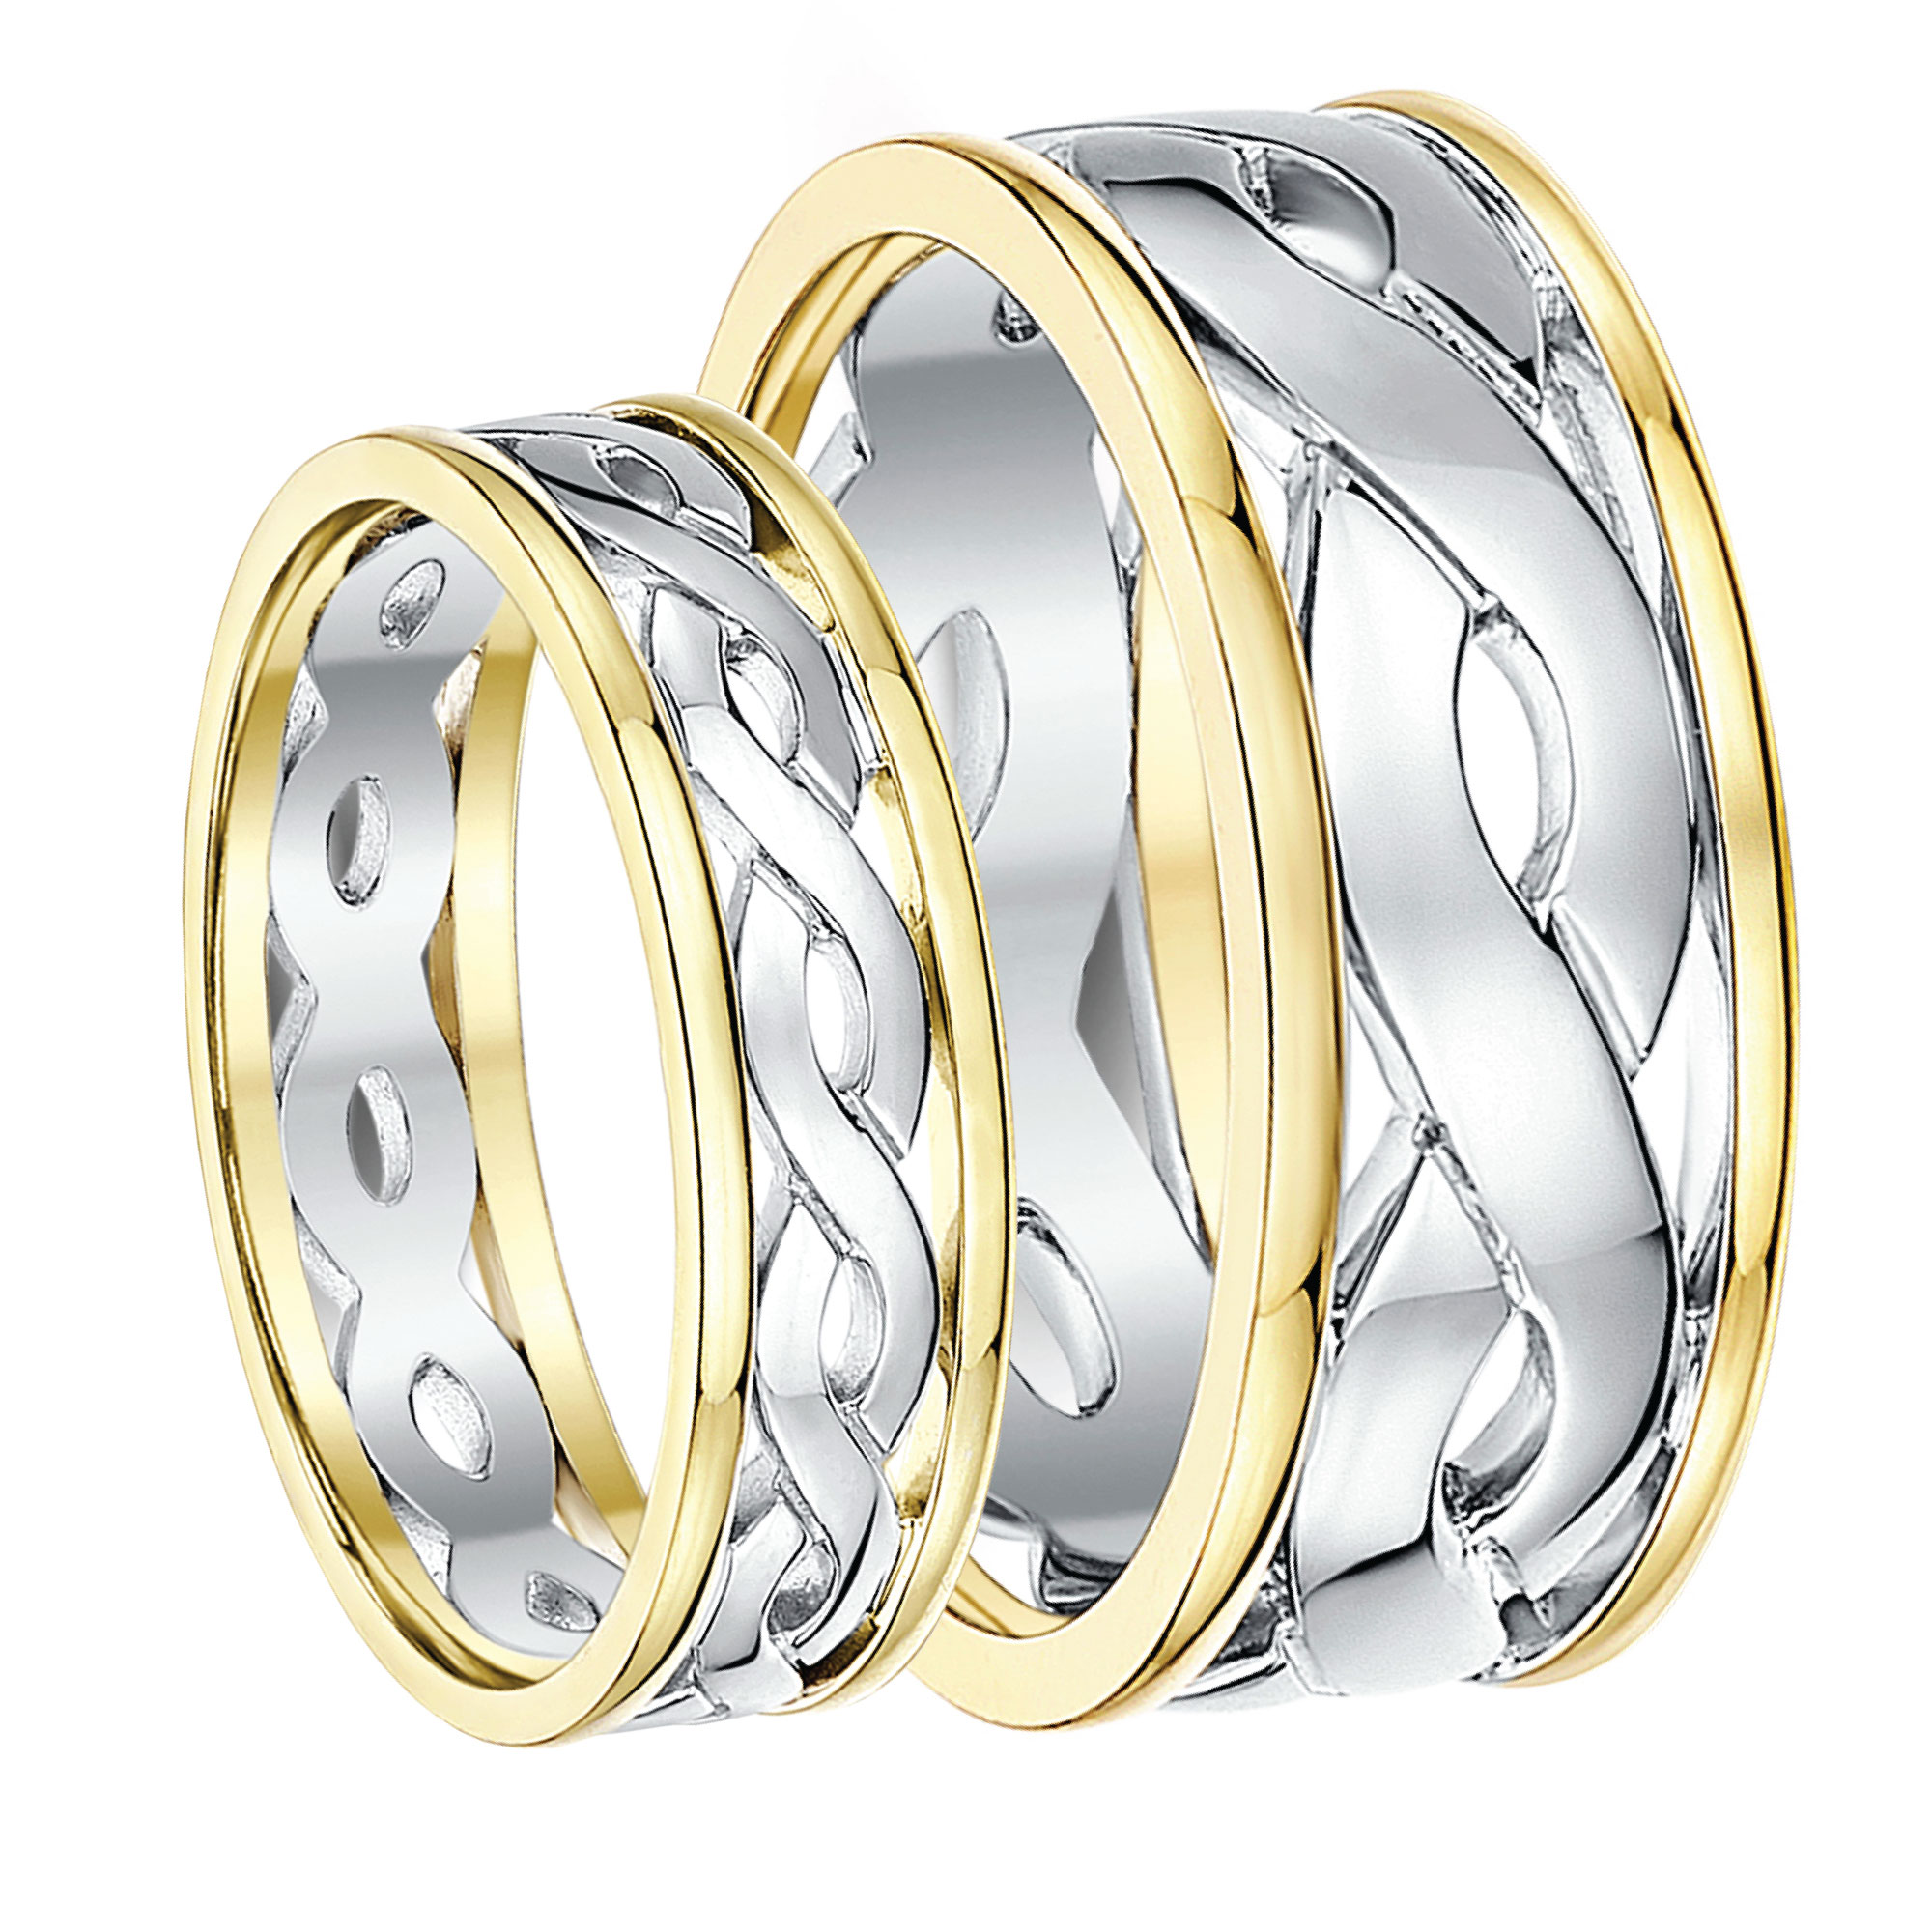 and wedding rings his matching centres weddings platinum edges with pin weddingrings satin bands patterned bevelled polished hers